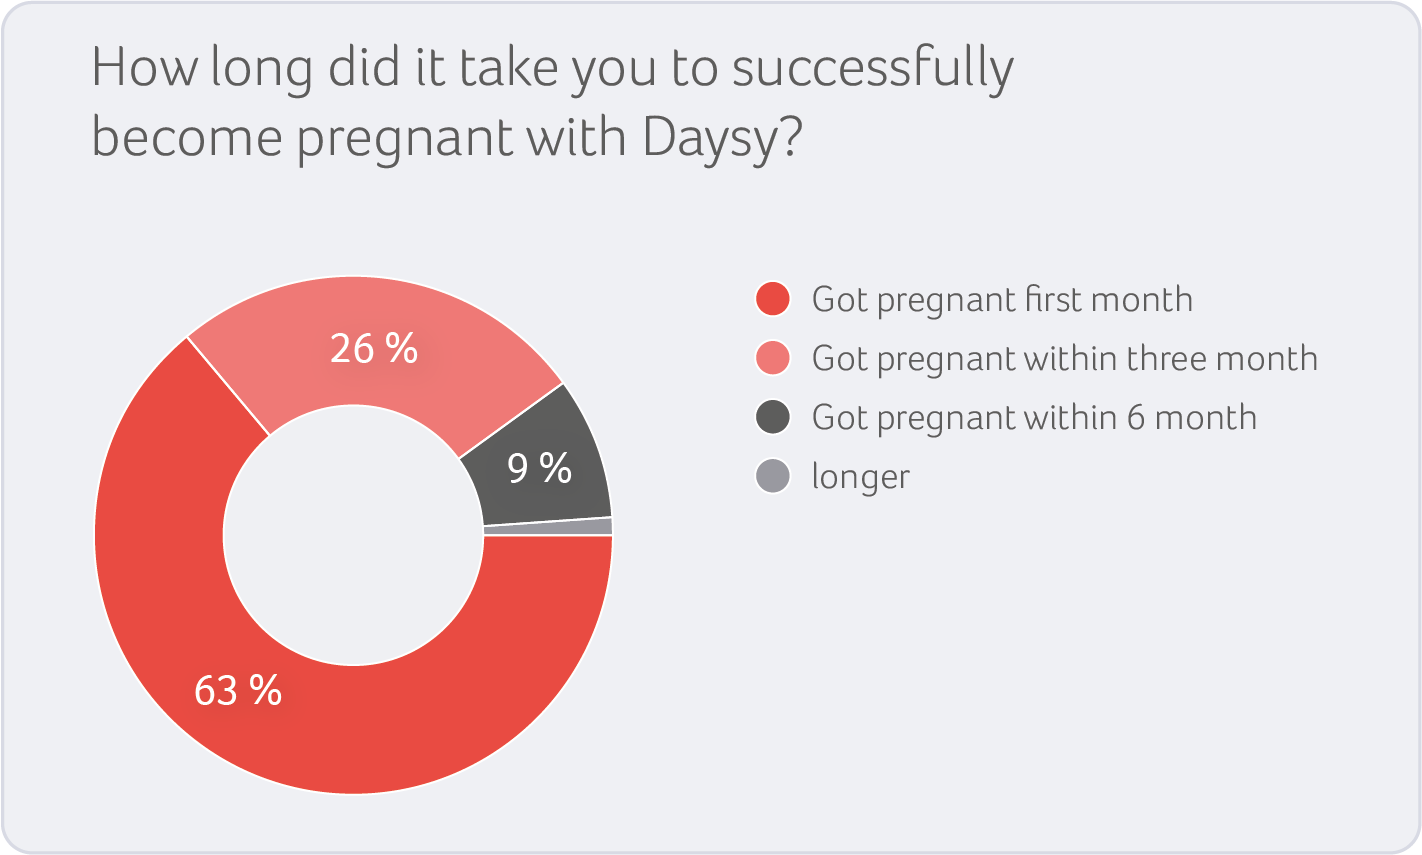 Getting successfully pregnant with Daysy